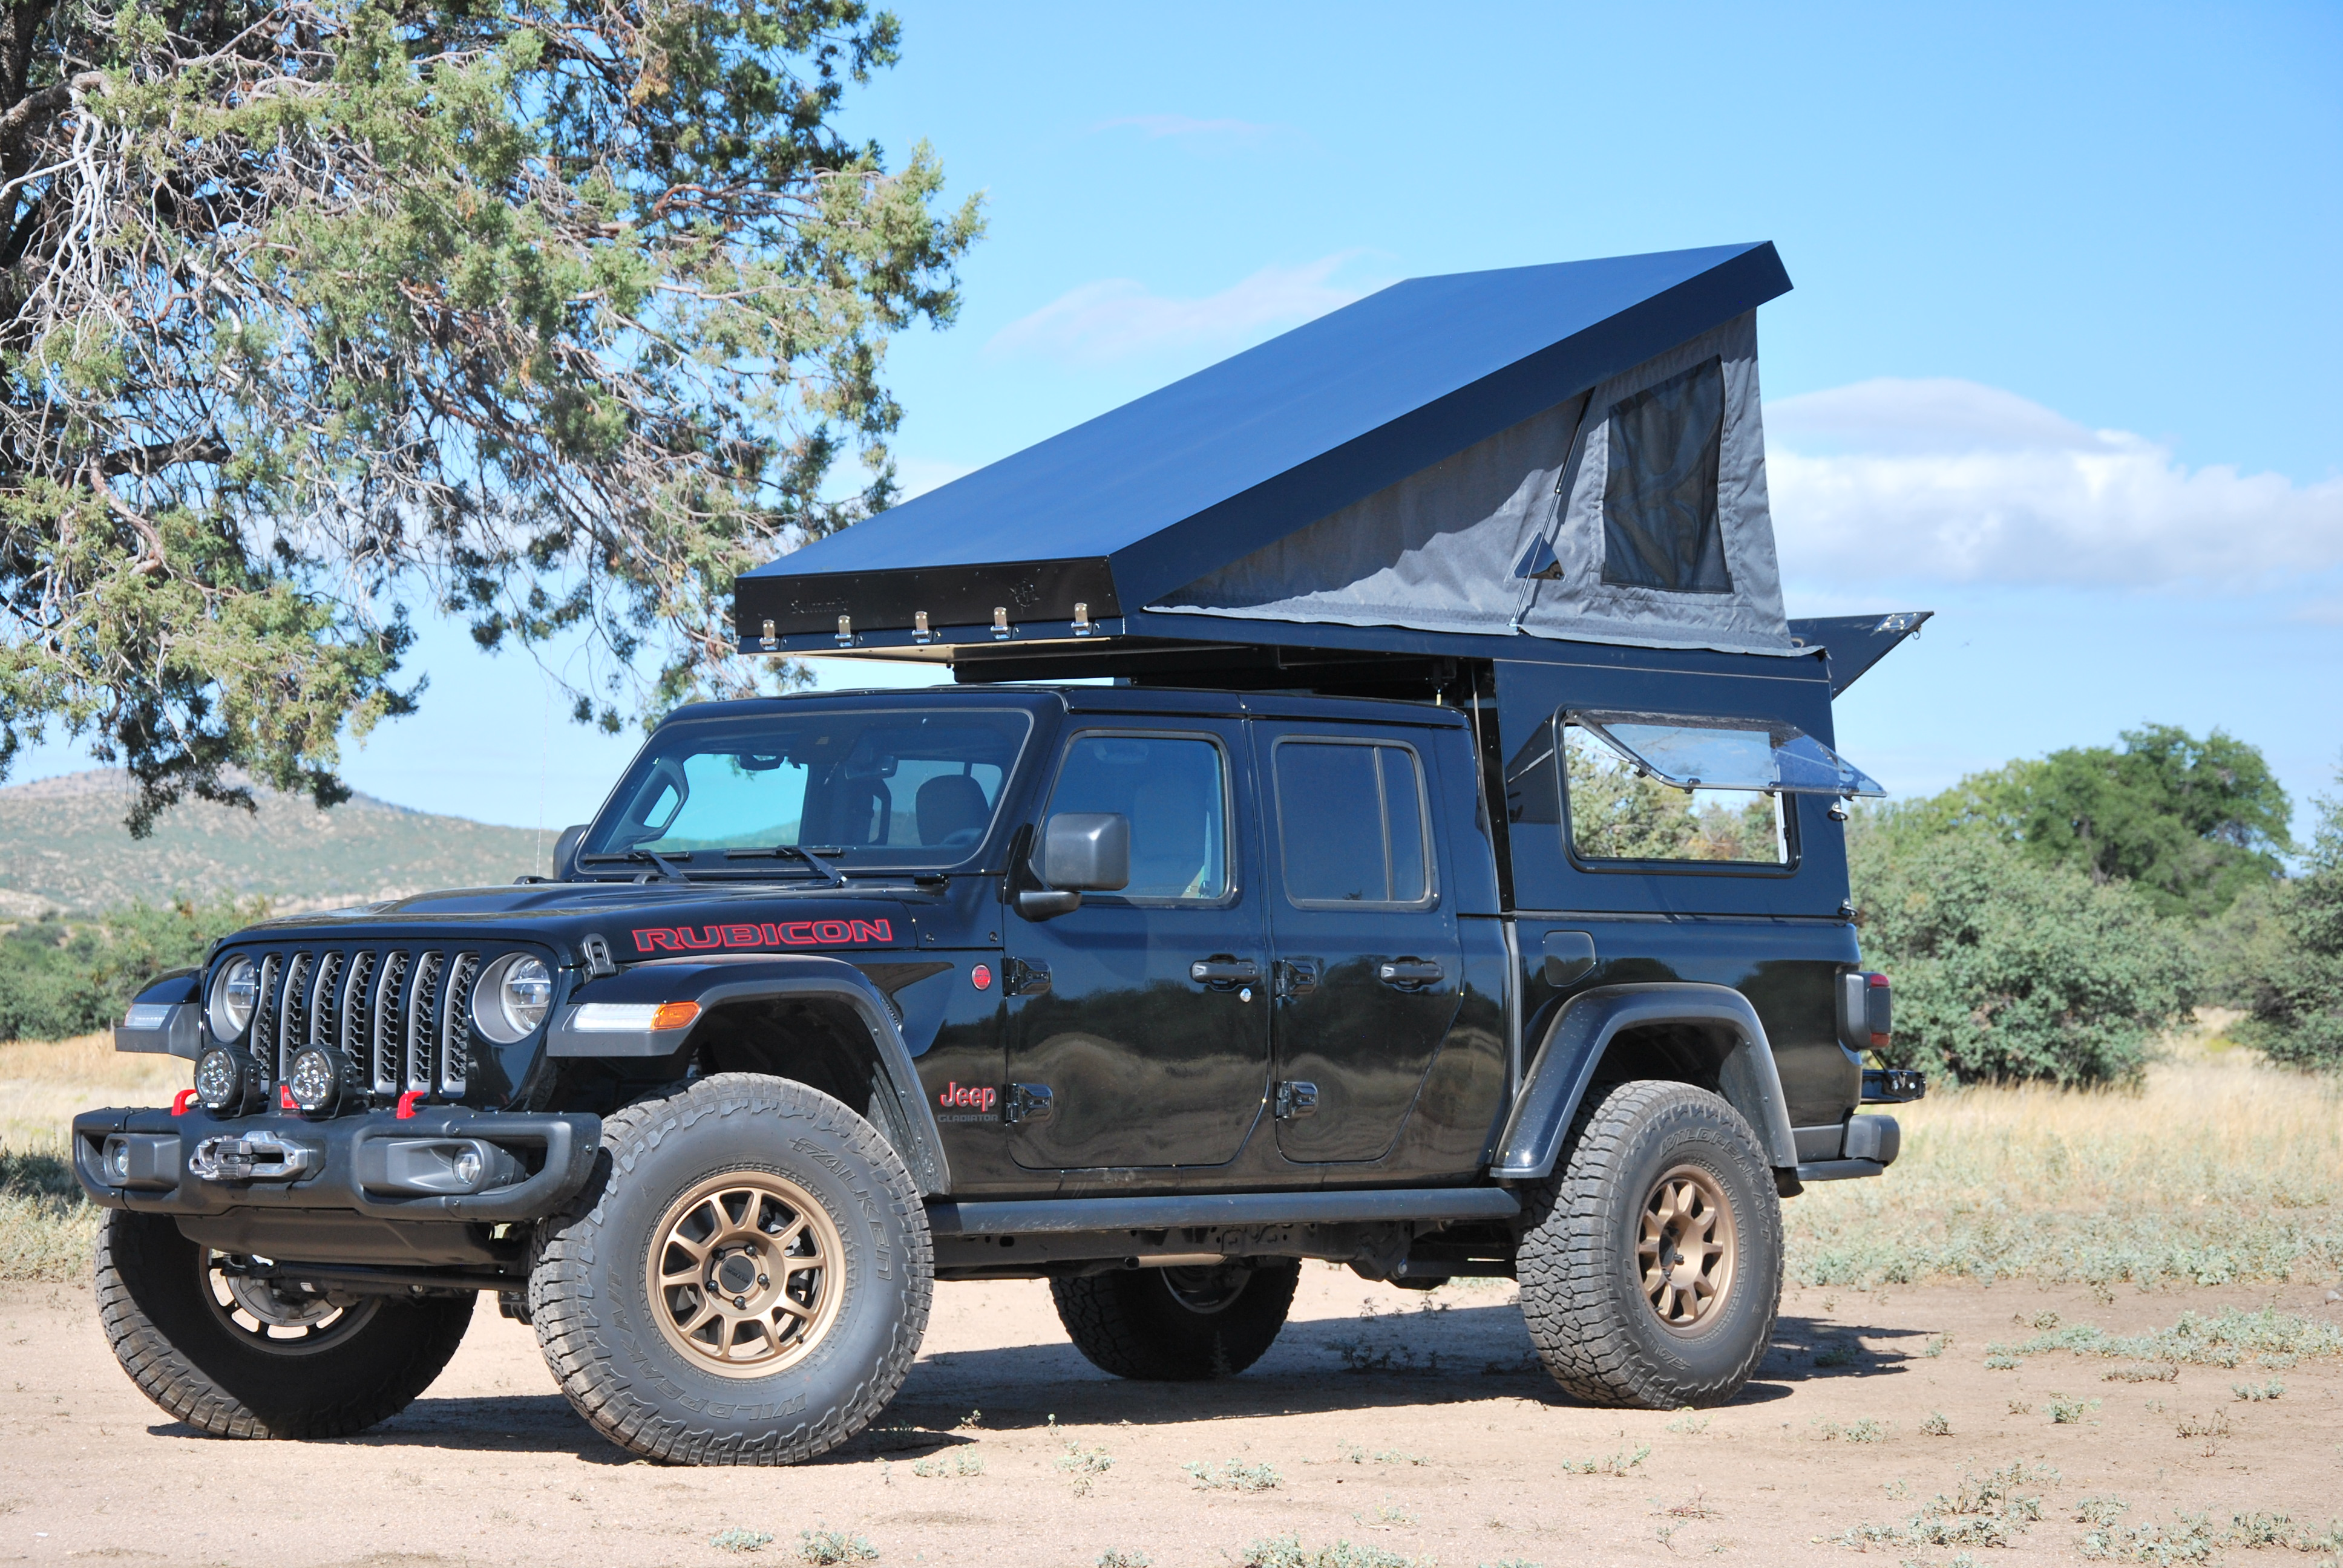 The Jeep Gladiator Camper